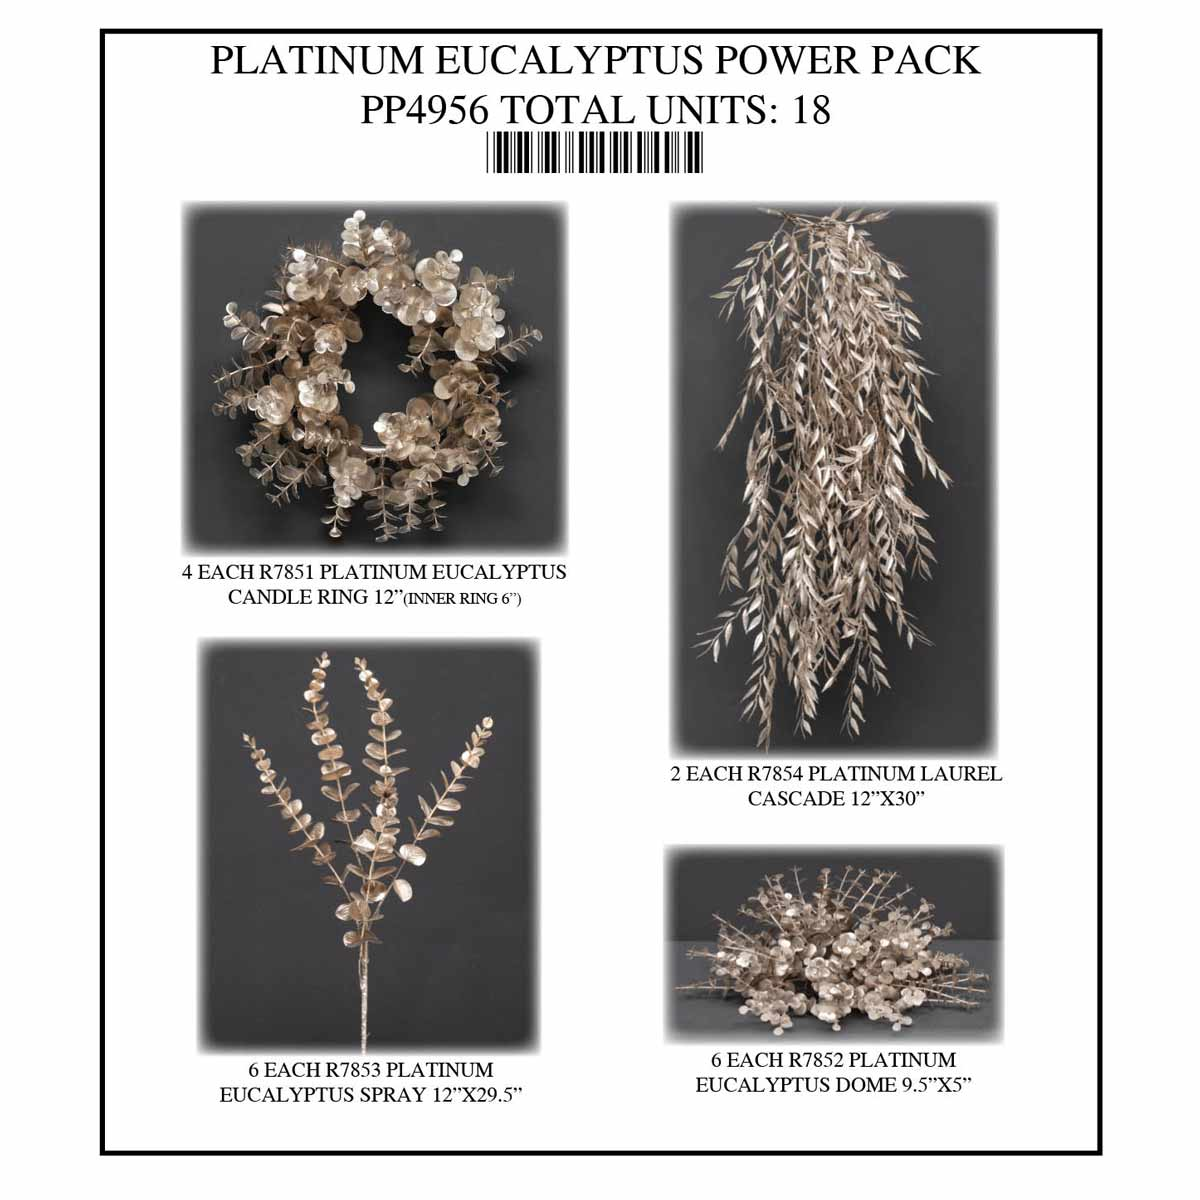 PLATINUM EUCALYPTUS POWER PACK 18 UNITS PP4956